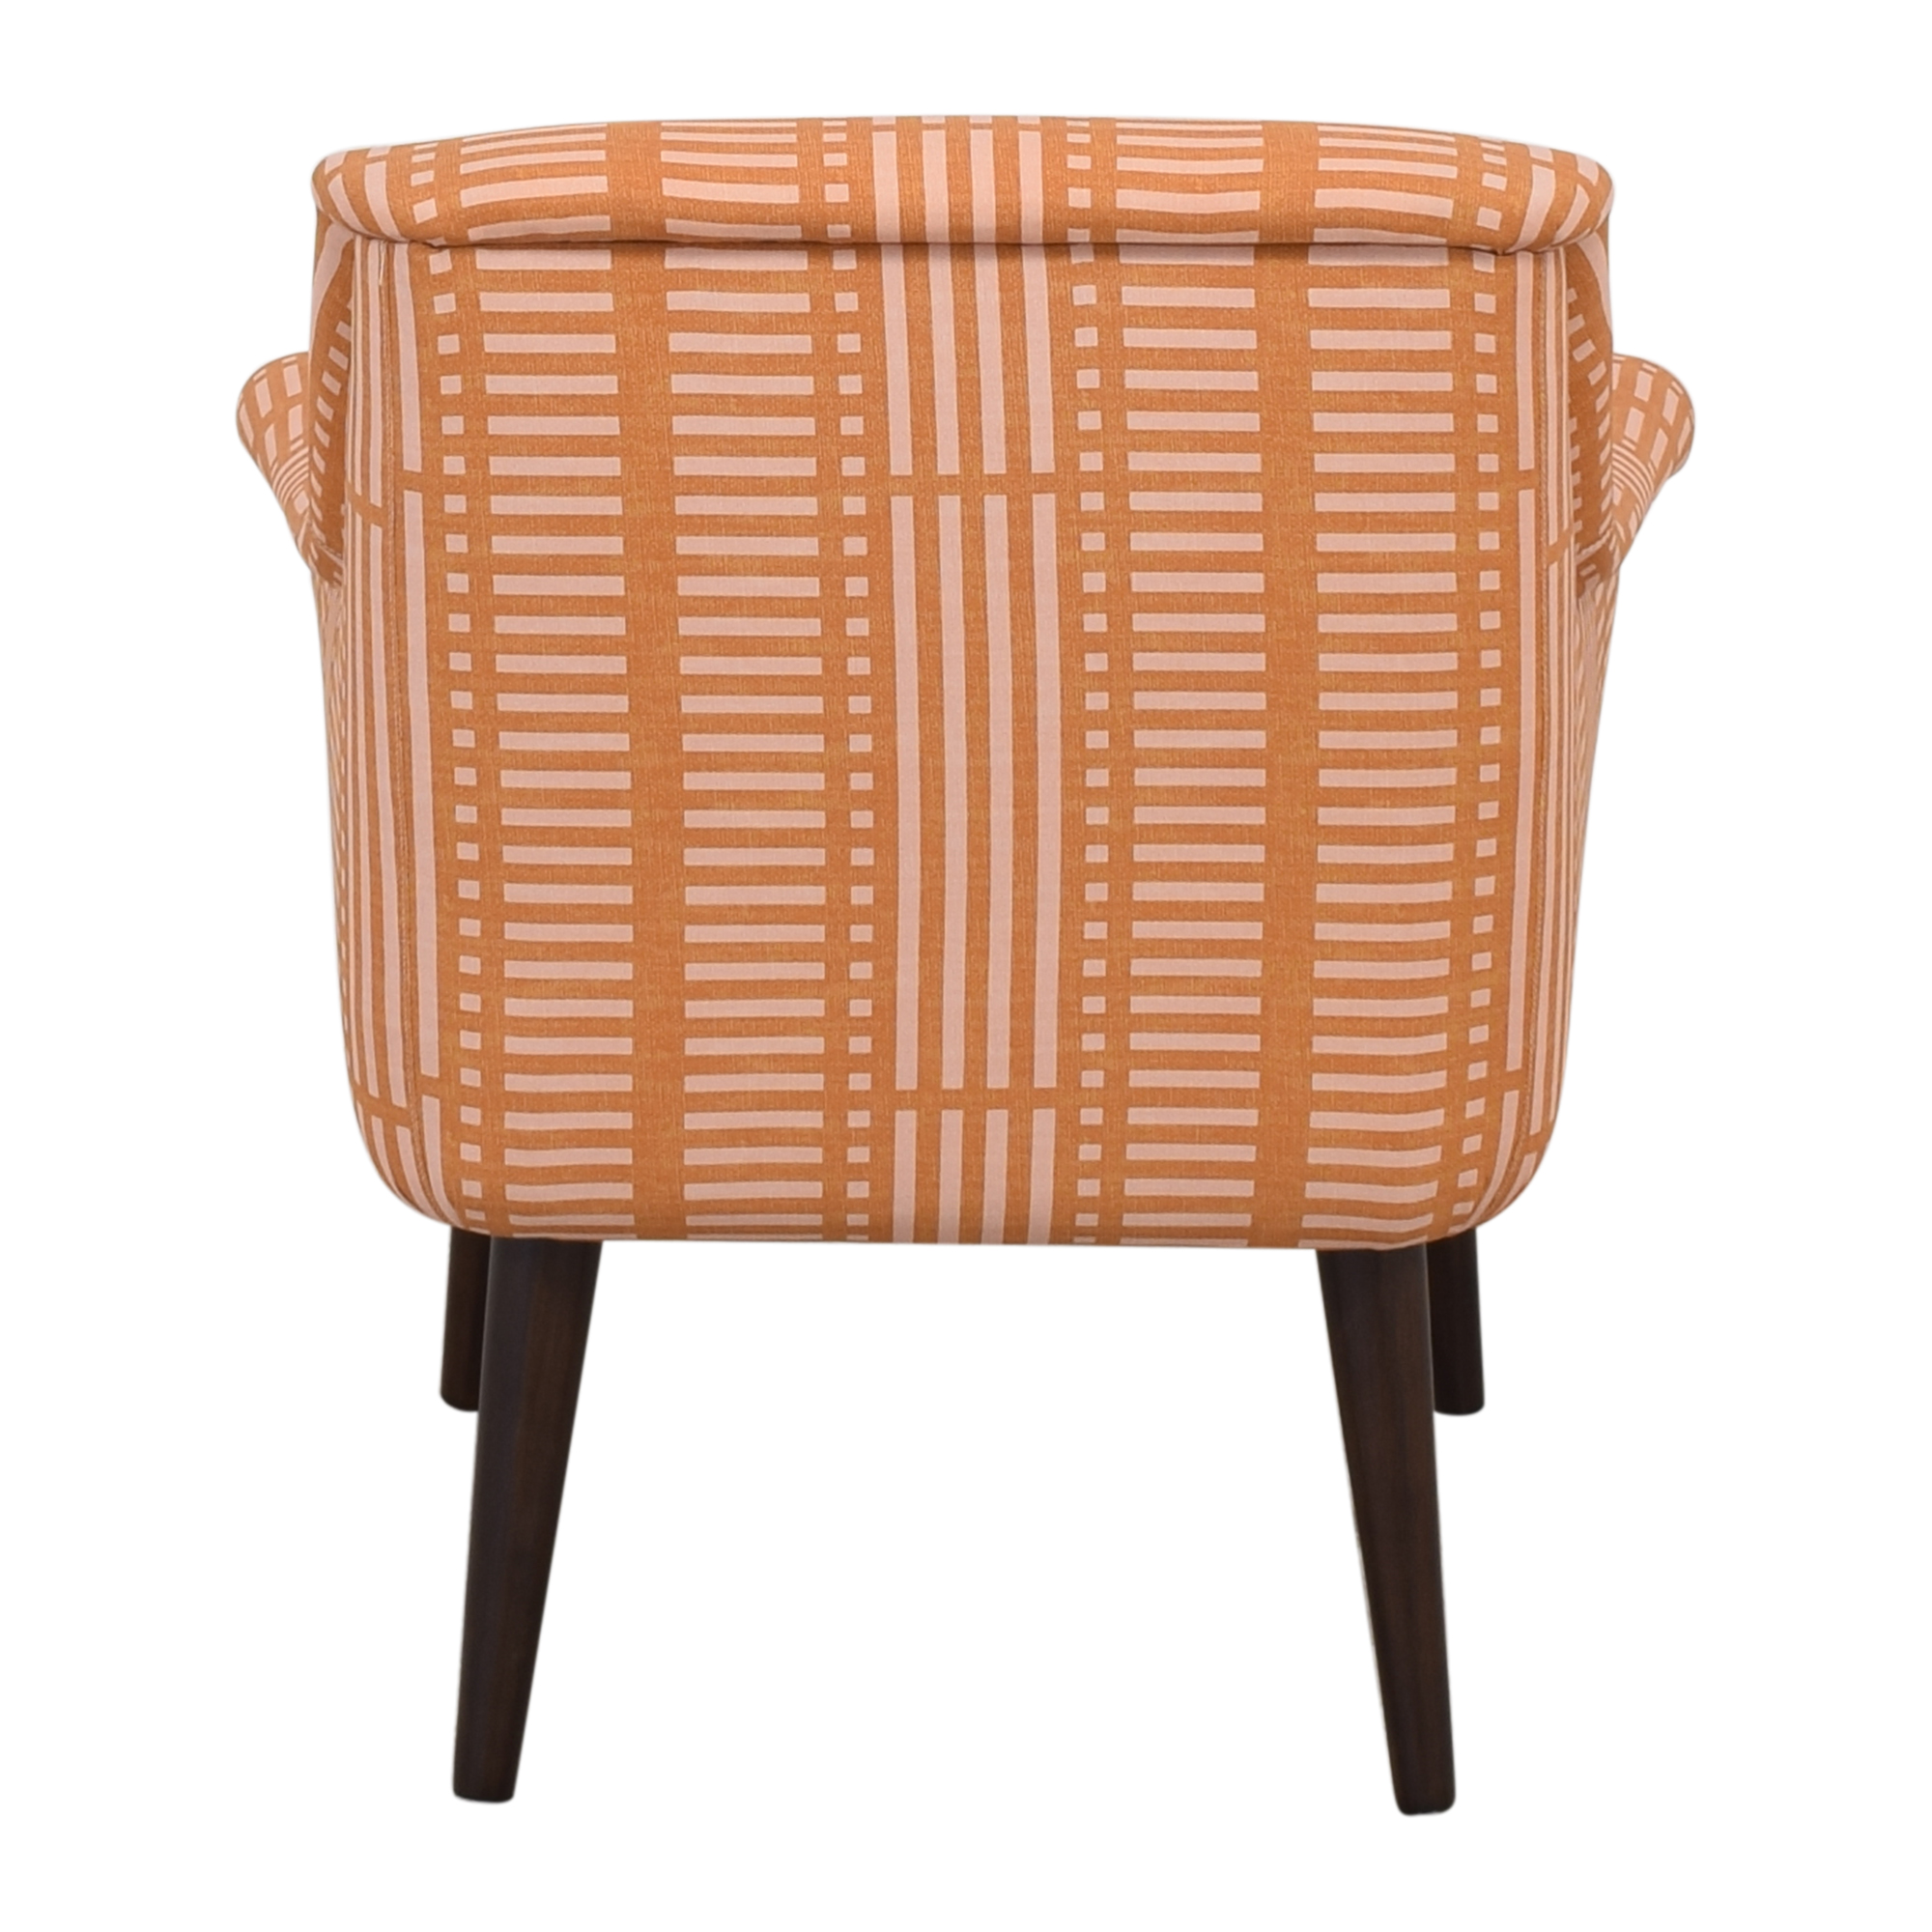 The Inside The Inside Cocktail Chair used